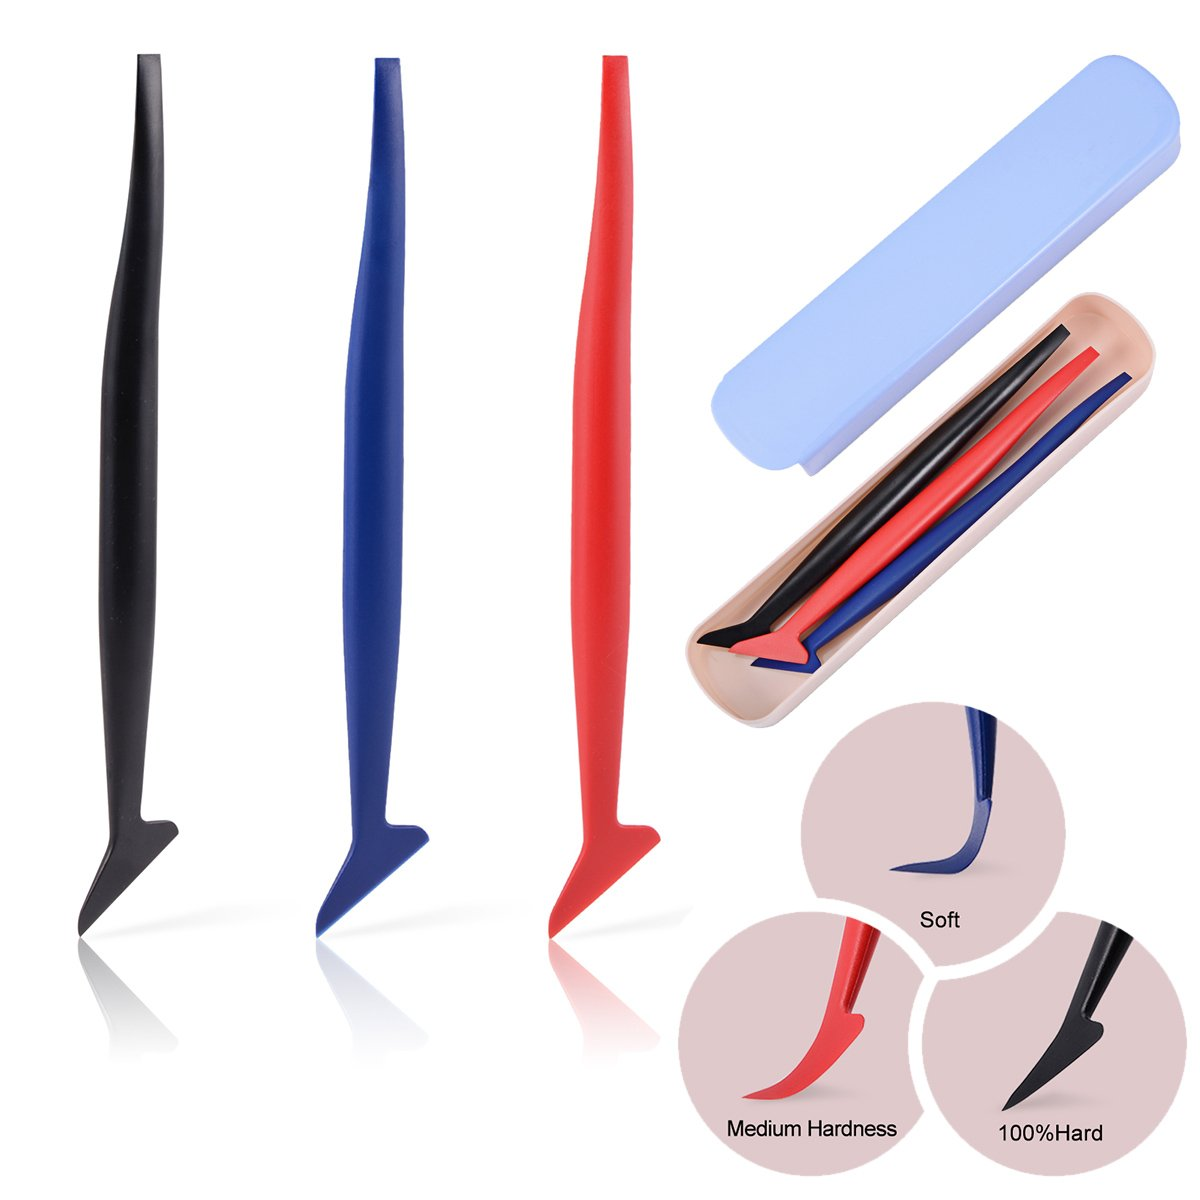 Ehdis 3 in 1 Micro Mini Squeegee Vinyl Wrap Graphic Application Tucking Molding Tool for Film into The Smallest Gaps